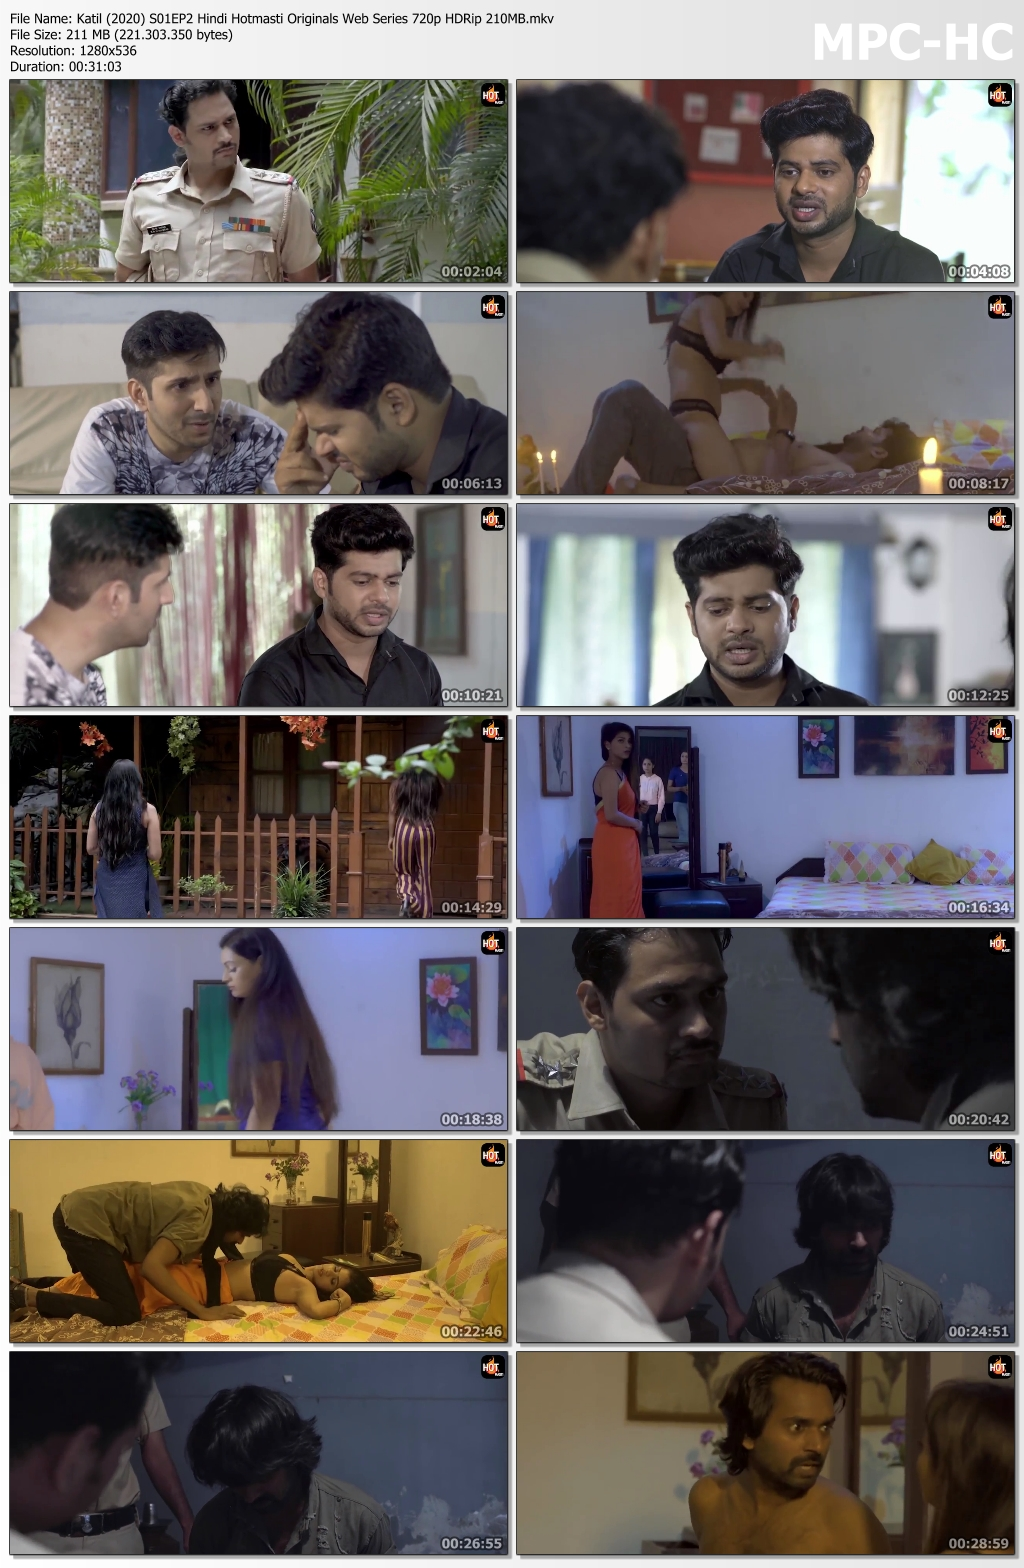 Katil-2020-S01-EP2-Hindi-Hotmasti-Originals-Web-Series-720p-HDRip-210-MB-mkv-thumbs